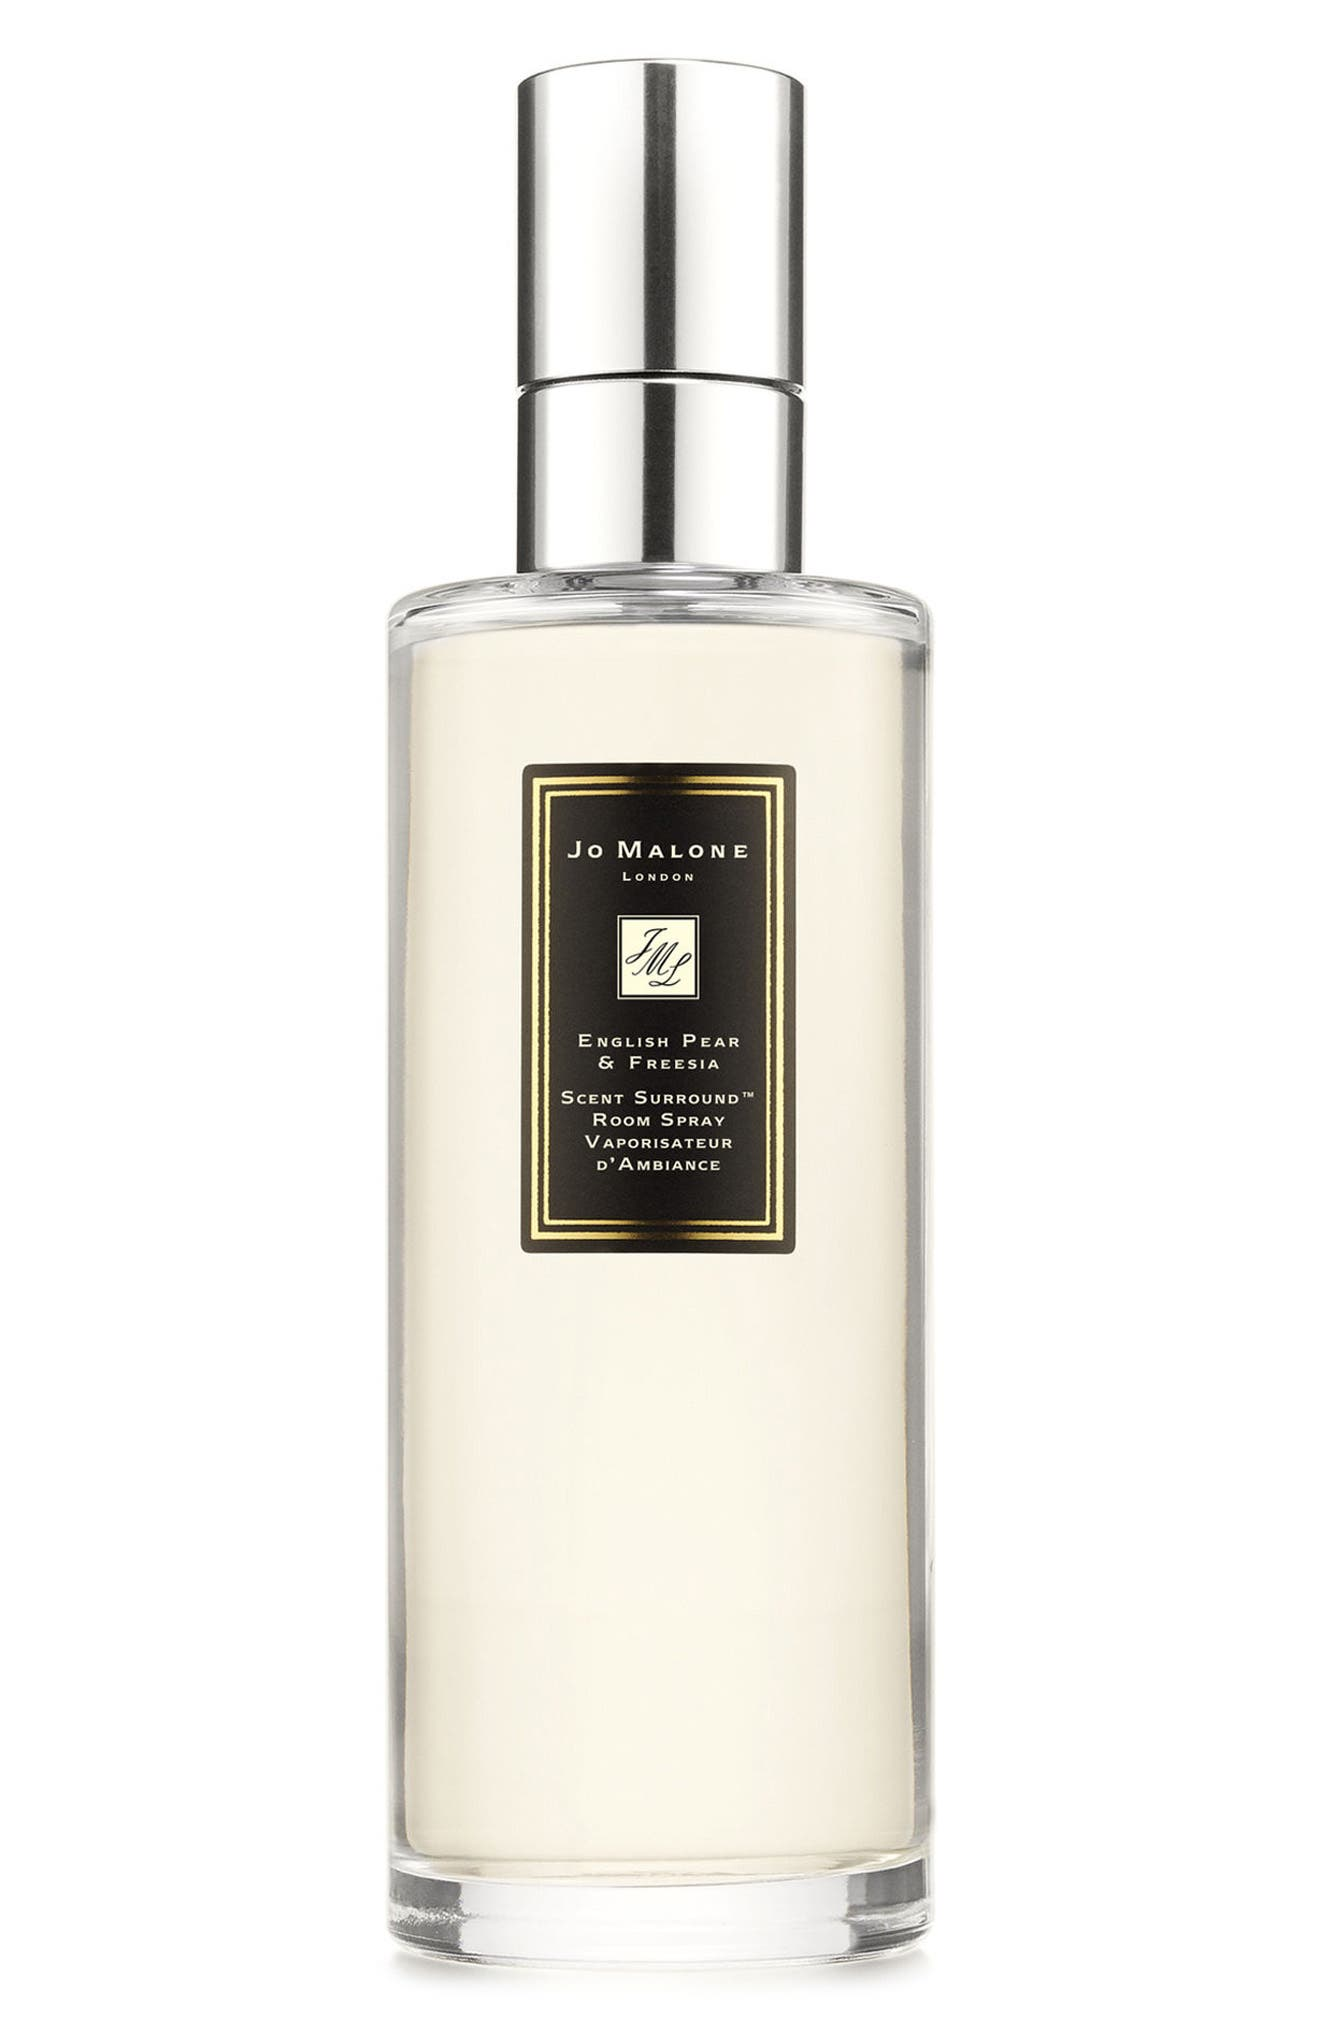 Jo Malone™ 'English Pear & Freesia' Scent Surround™ Room Spray